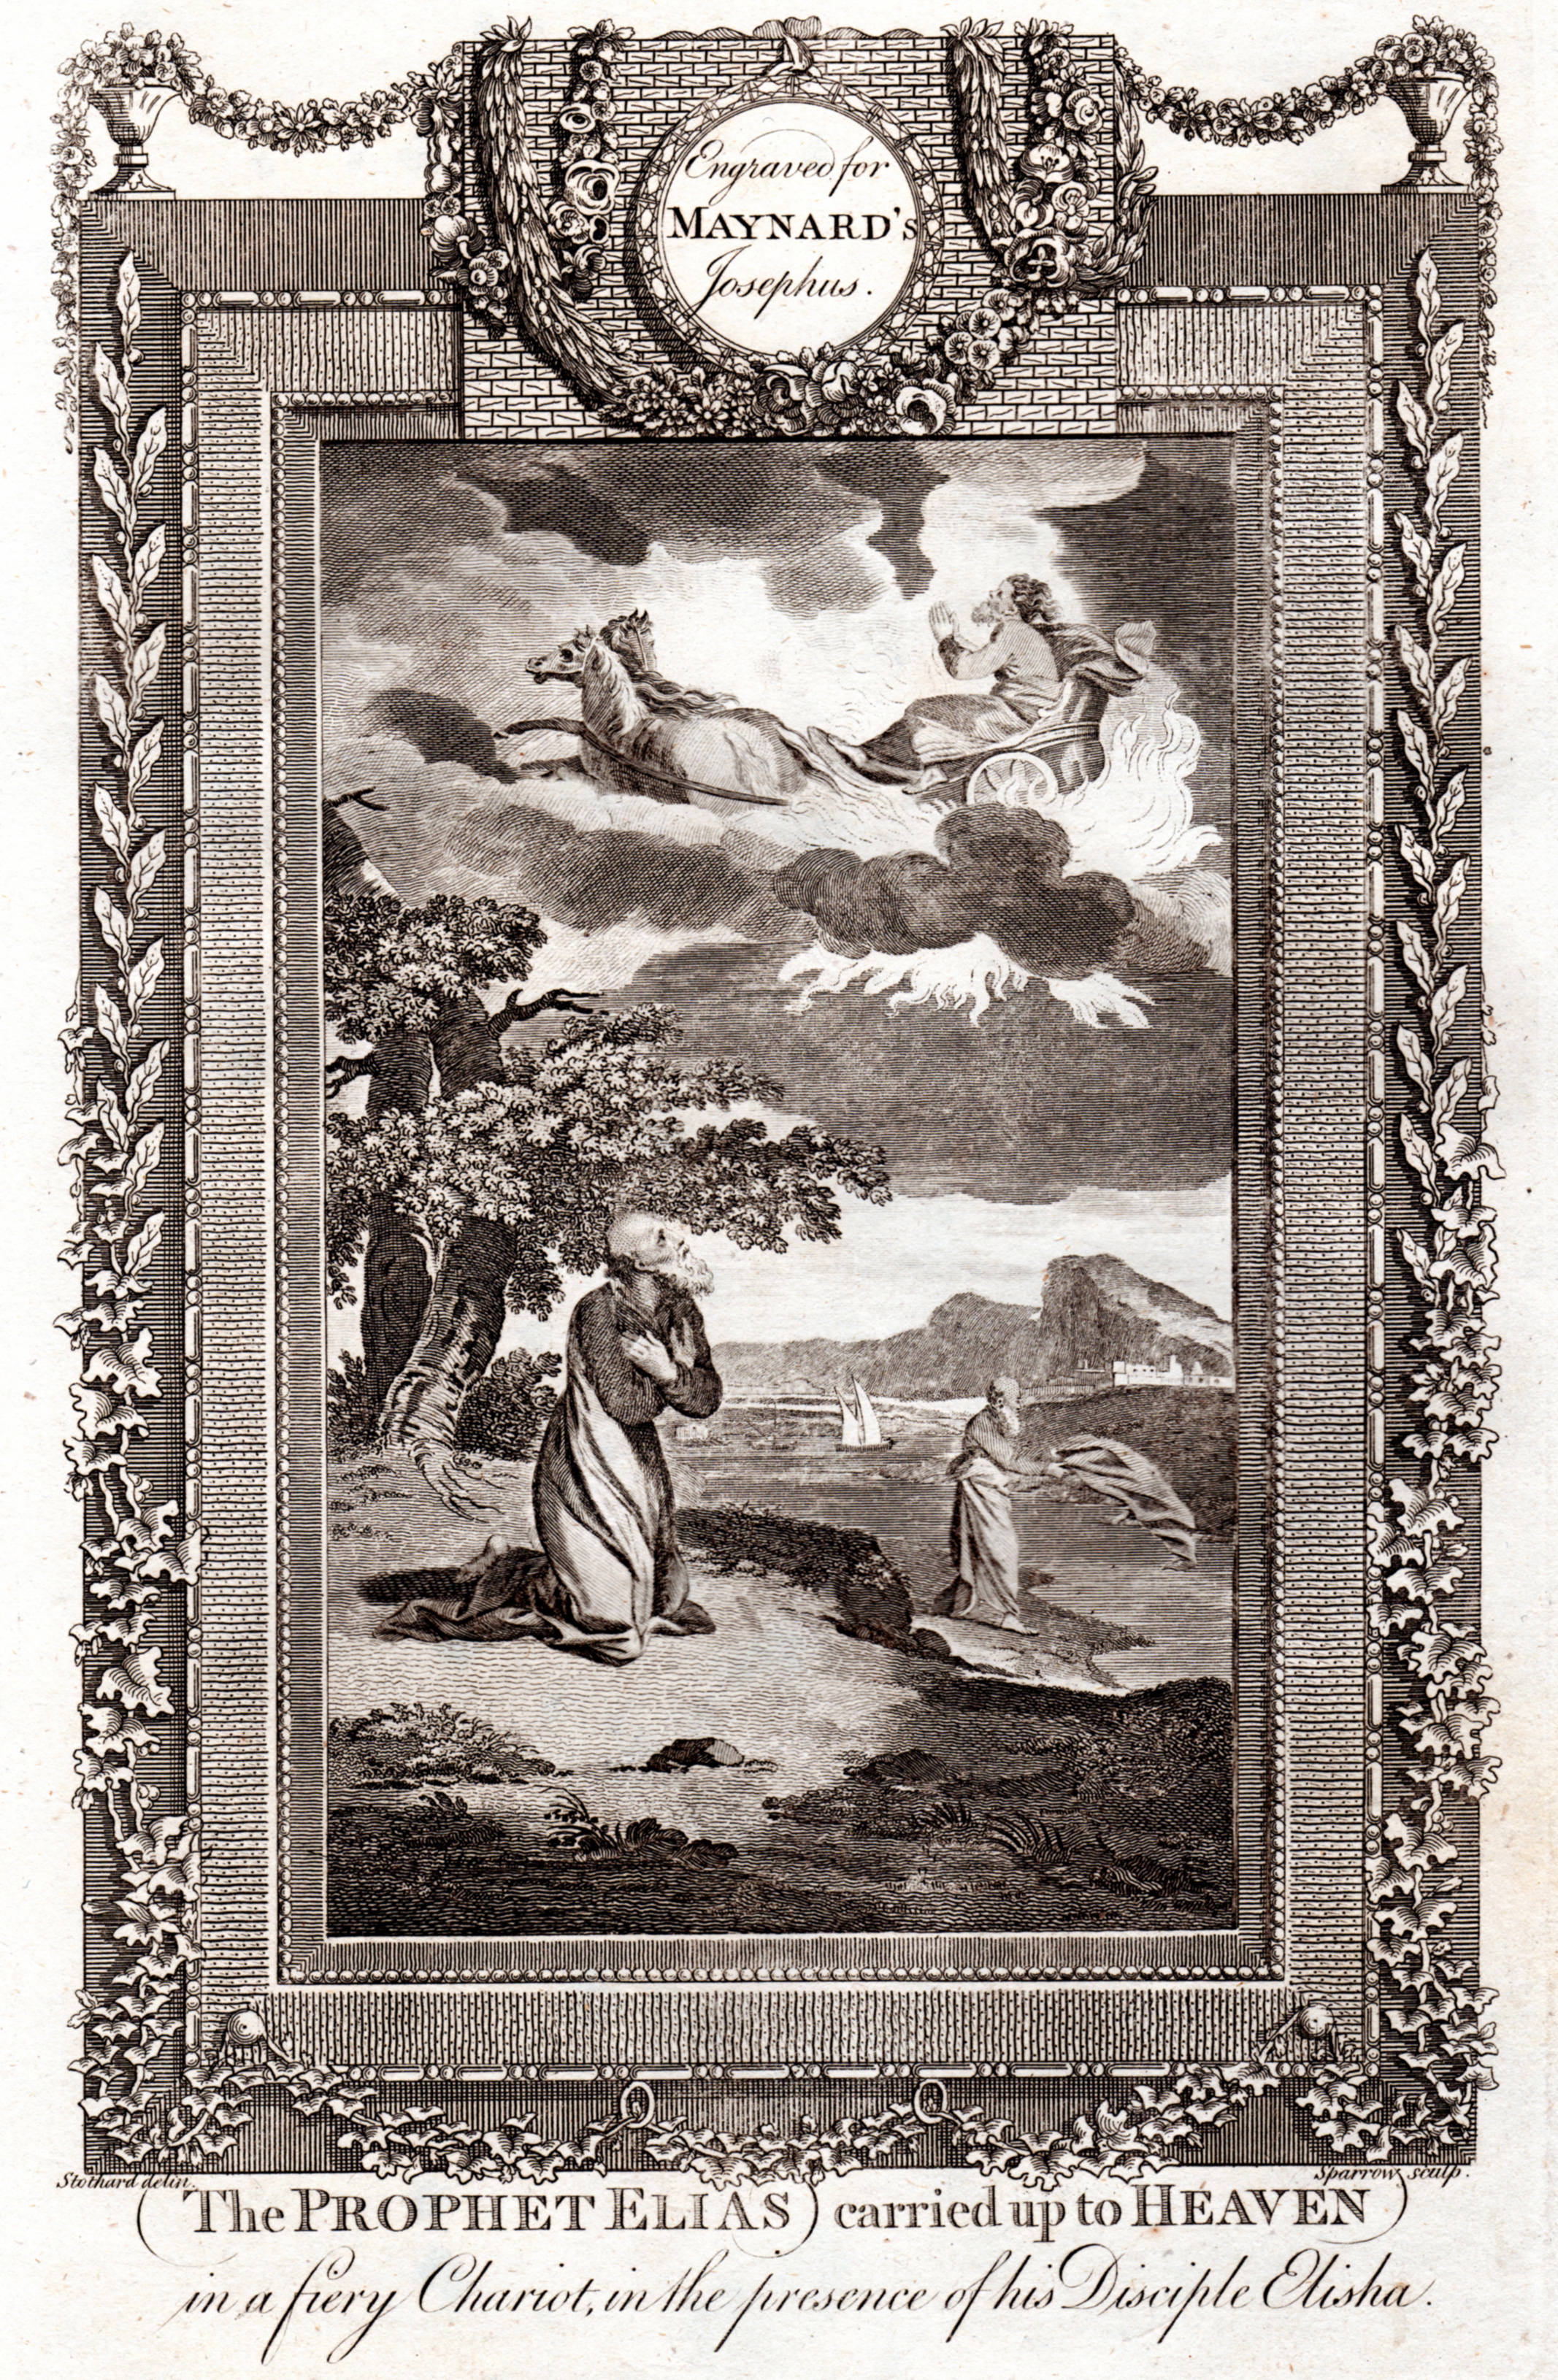 The Genuine and Complete Works of Flavius Josephus The celebrated Warlike, Learned and Authentic JEWISH HISTORIAN  by George Henry Maynard (ca. 1785-1792)